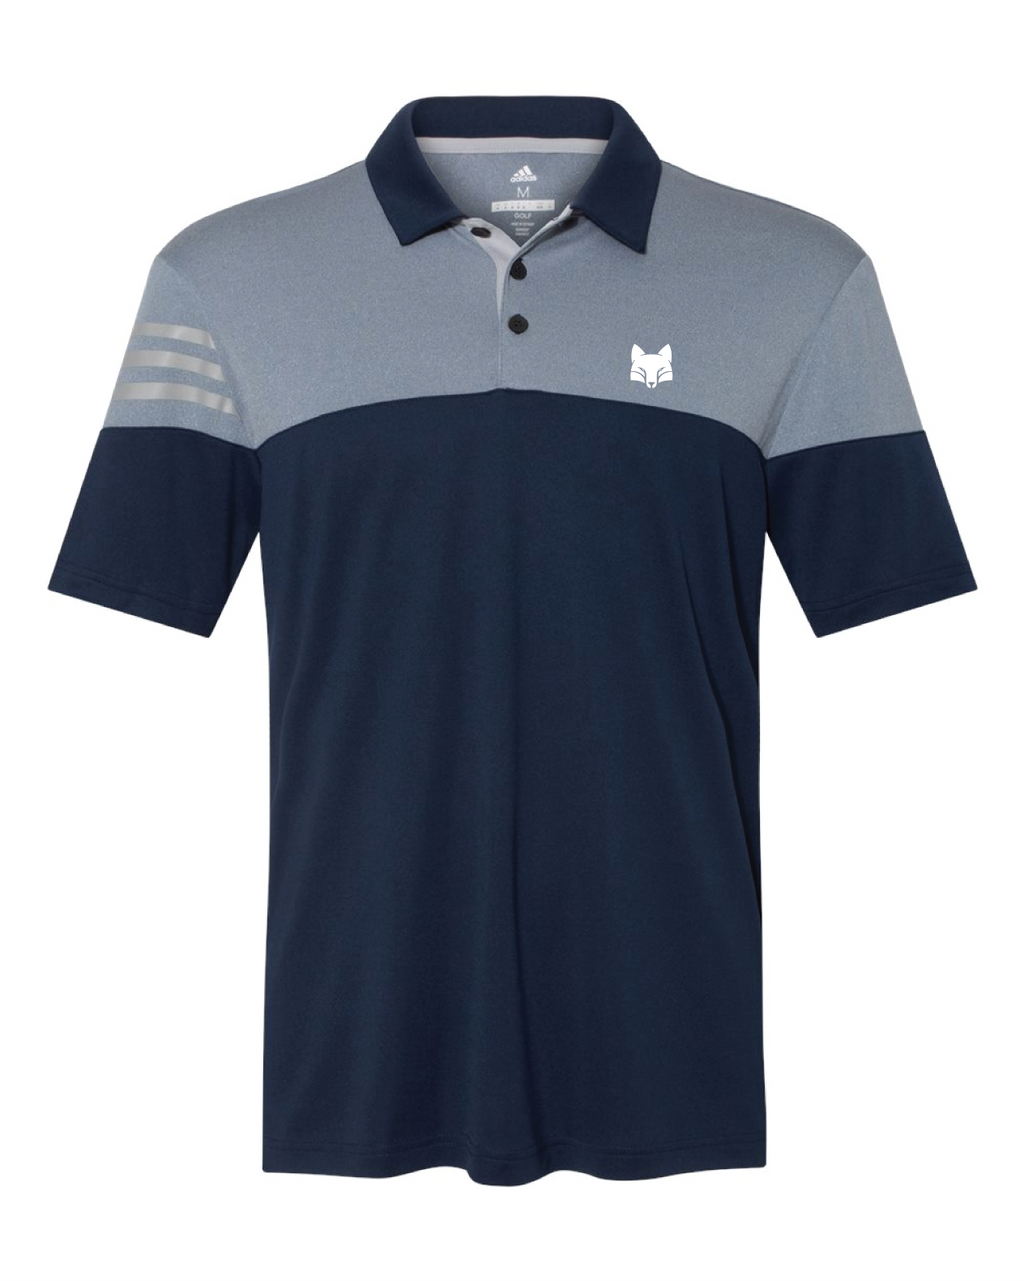 Adidas Heather Three Strip Polo